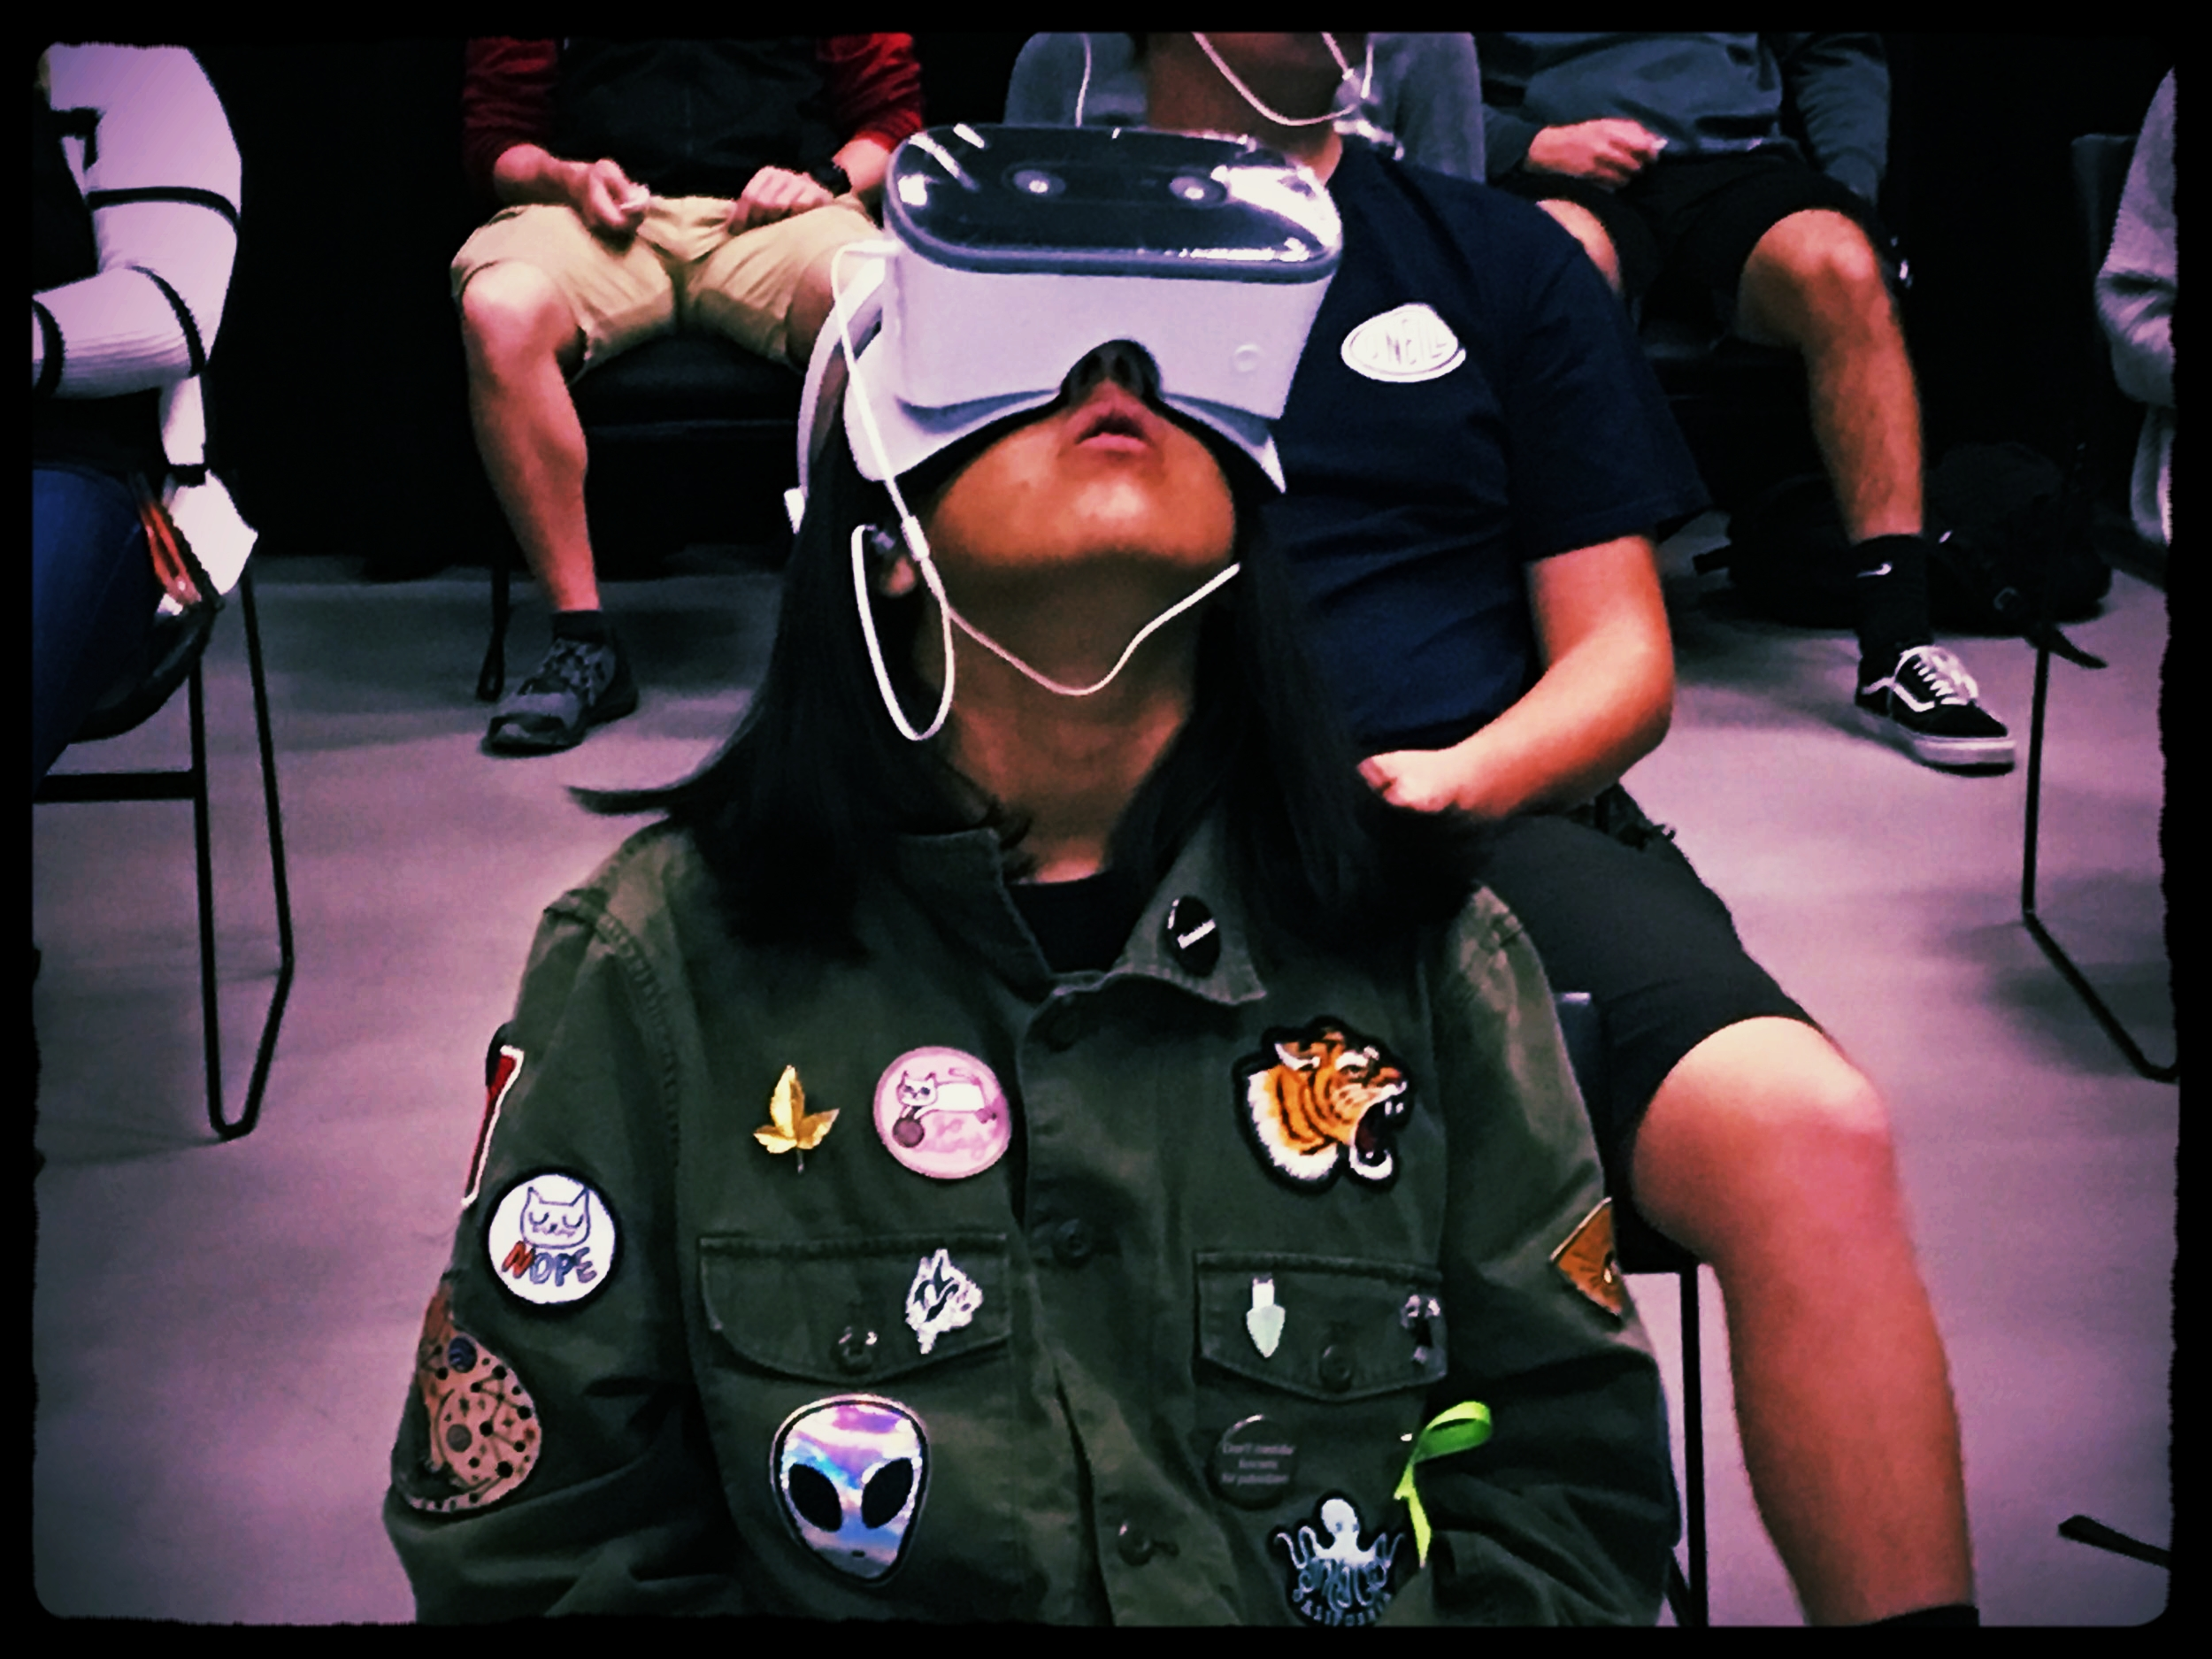 VR Is a game changer - Virtual reality allows us to design our courses in ways never before possible. Hold an atom in your hand and look inside with Sama VR.